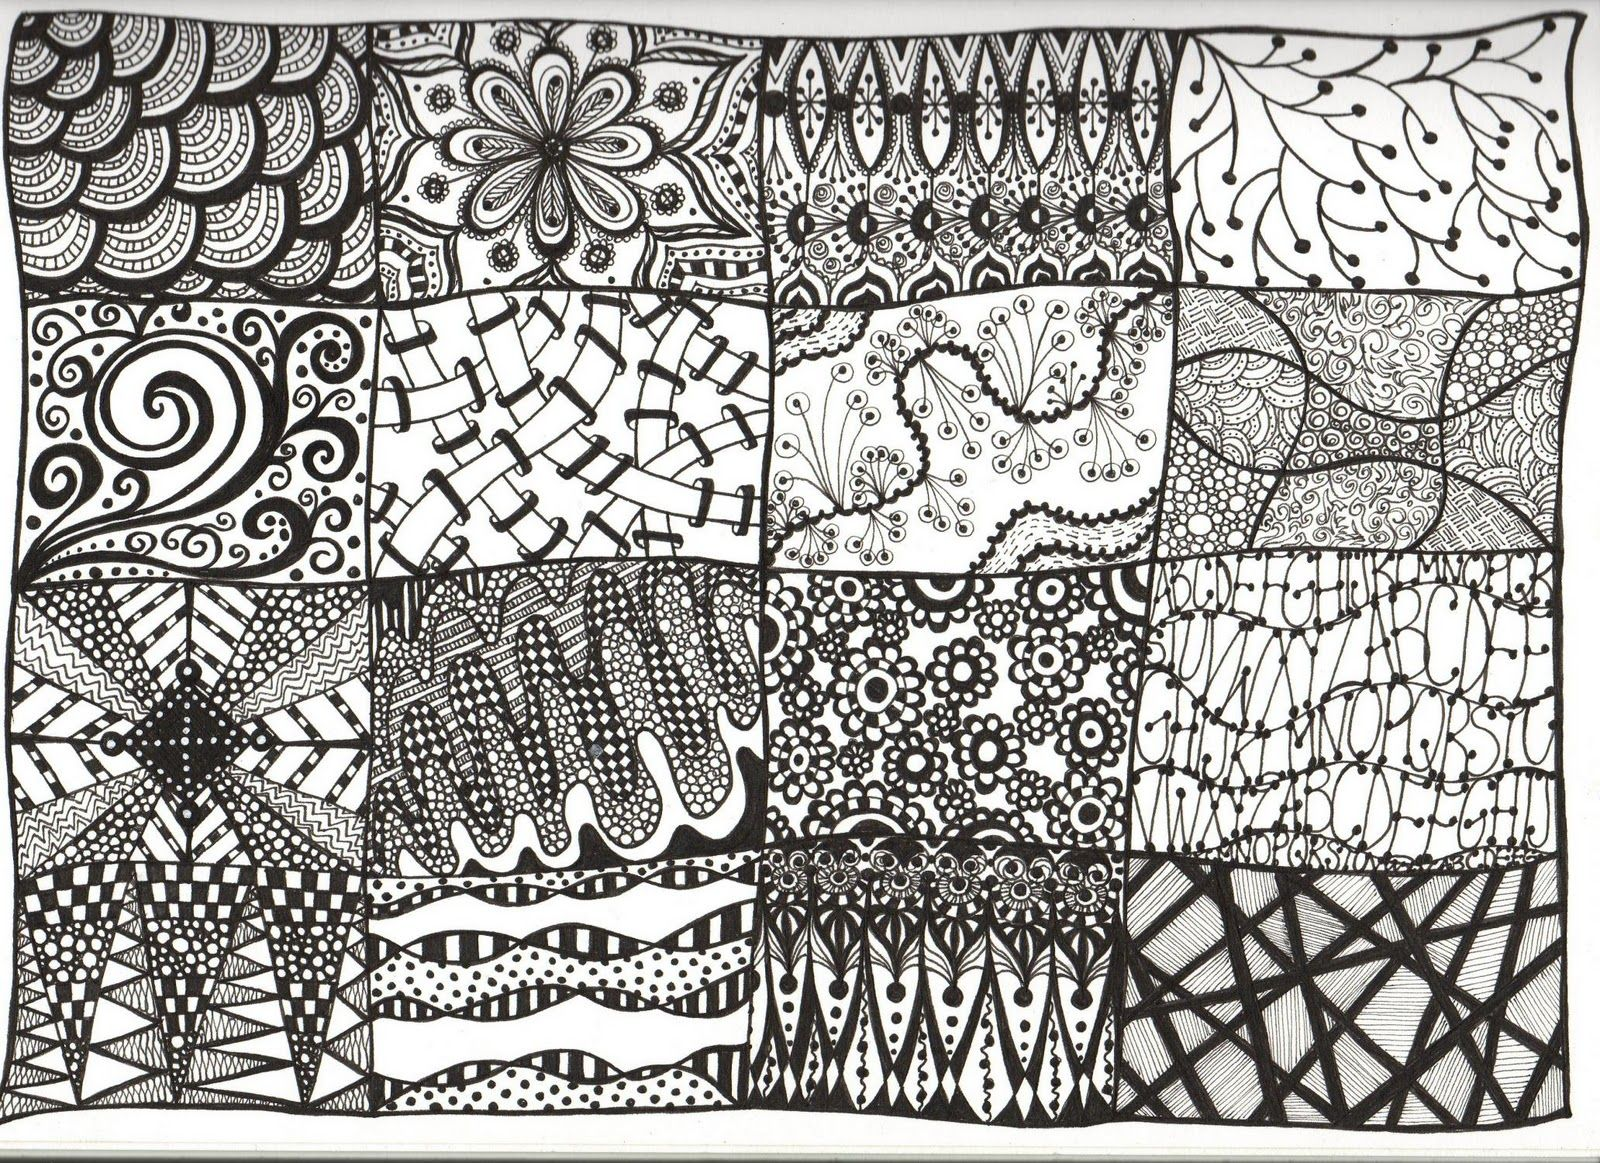 Creative Zentangle Designs Zentangles A Sampler This